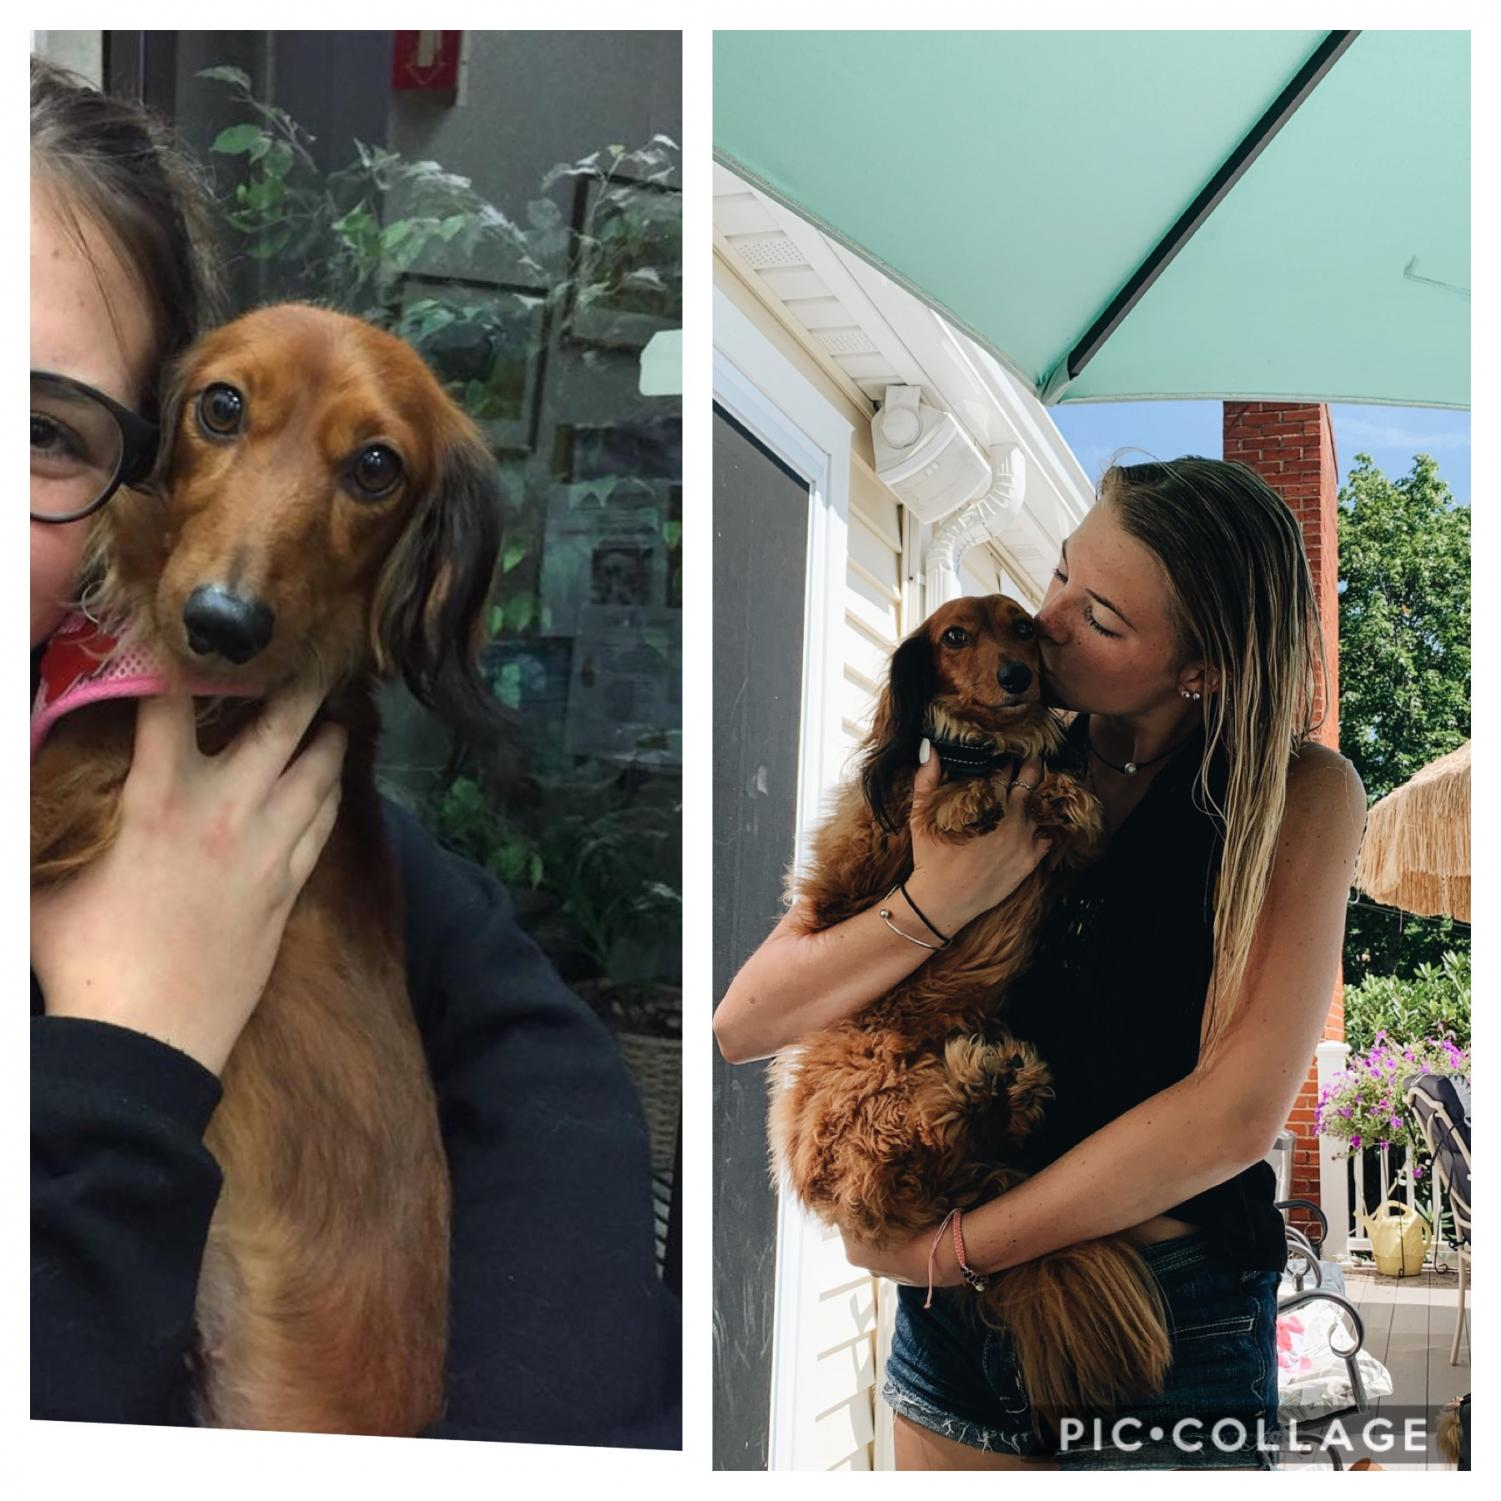 "(Left Picture: Trixie, a three year old malnourished and underweight Mini-Dachshund was rescued by the Harris family in 2016.) (Right Picture: Trixie, 3 years later in 2019, at an average weight and perfect health.) ""Rescuing this dog changed our lives. We got so lucky. She is the sweetest and most loving dog. I can speak for my whole family when I say, we can't picture life without her,"" said Karen Harris"